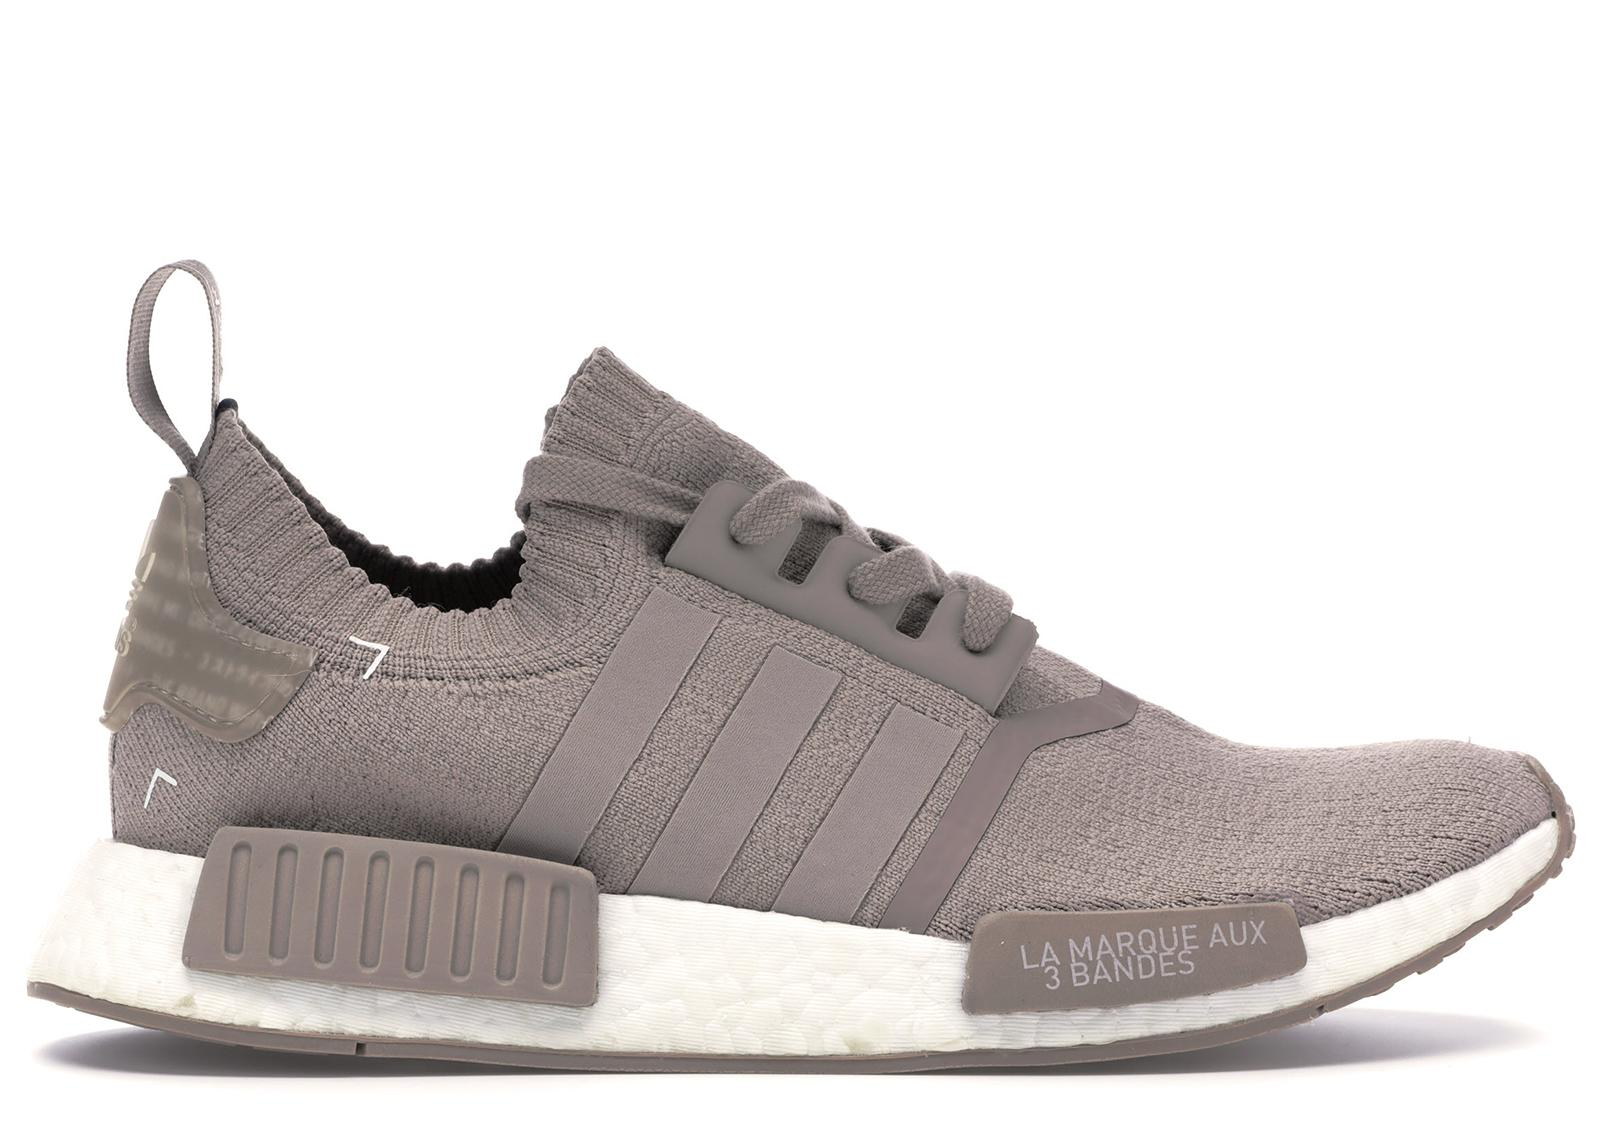 adidas Nmd R1 French Beige in Gray for